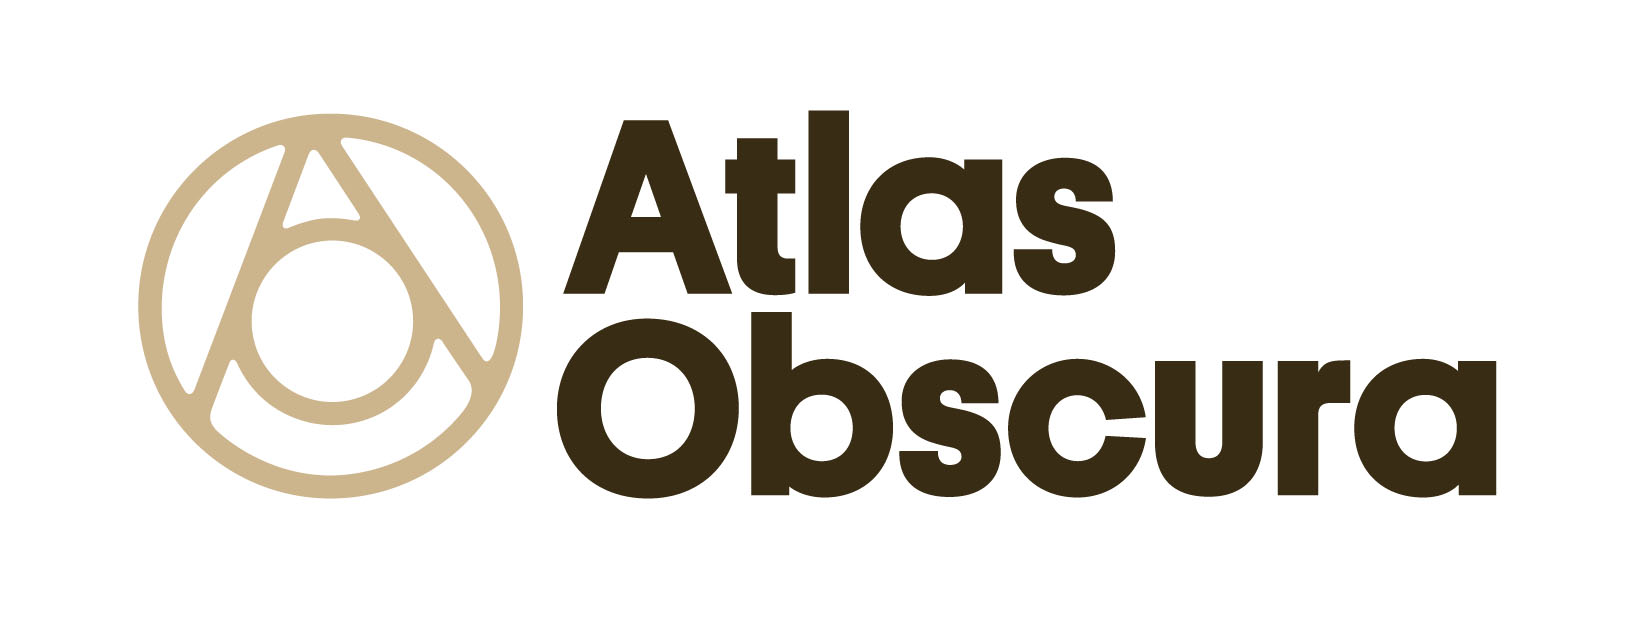 atlas obscura copy.jpg